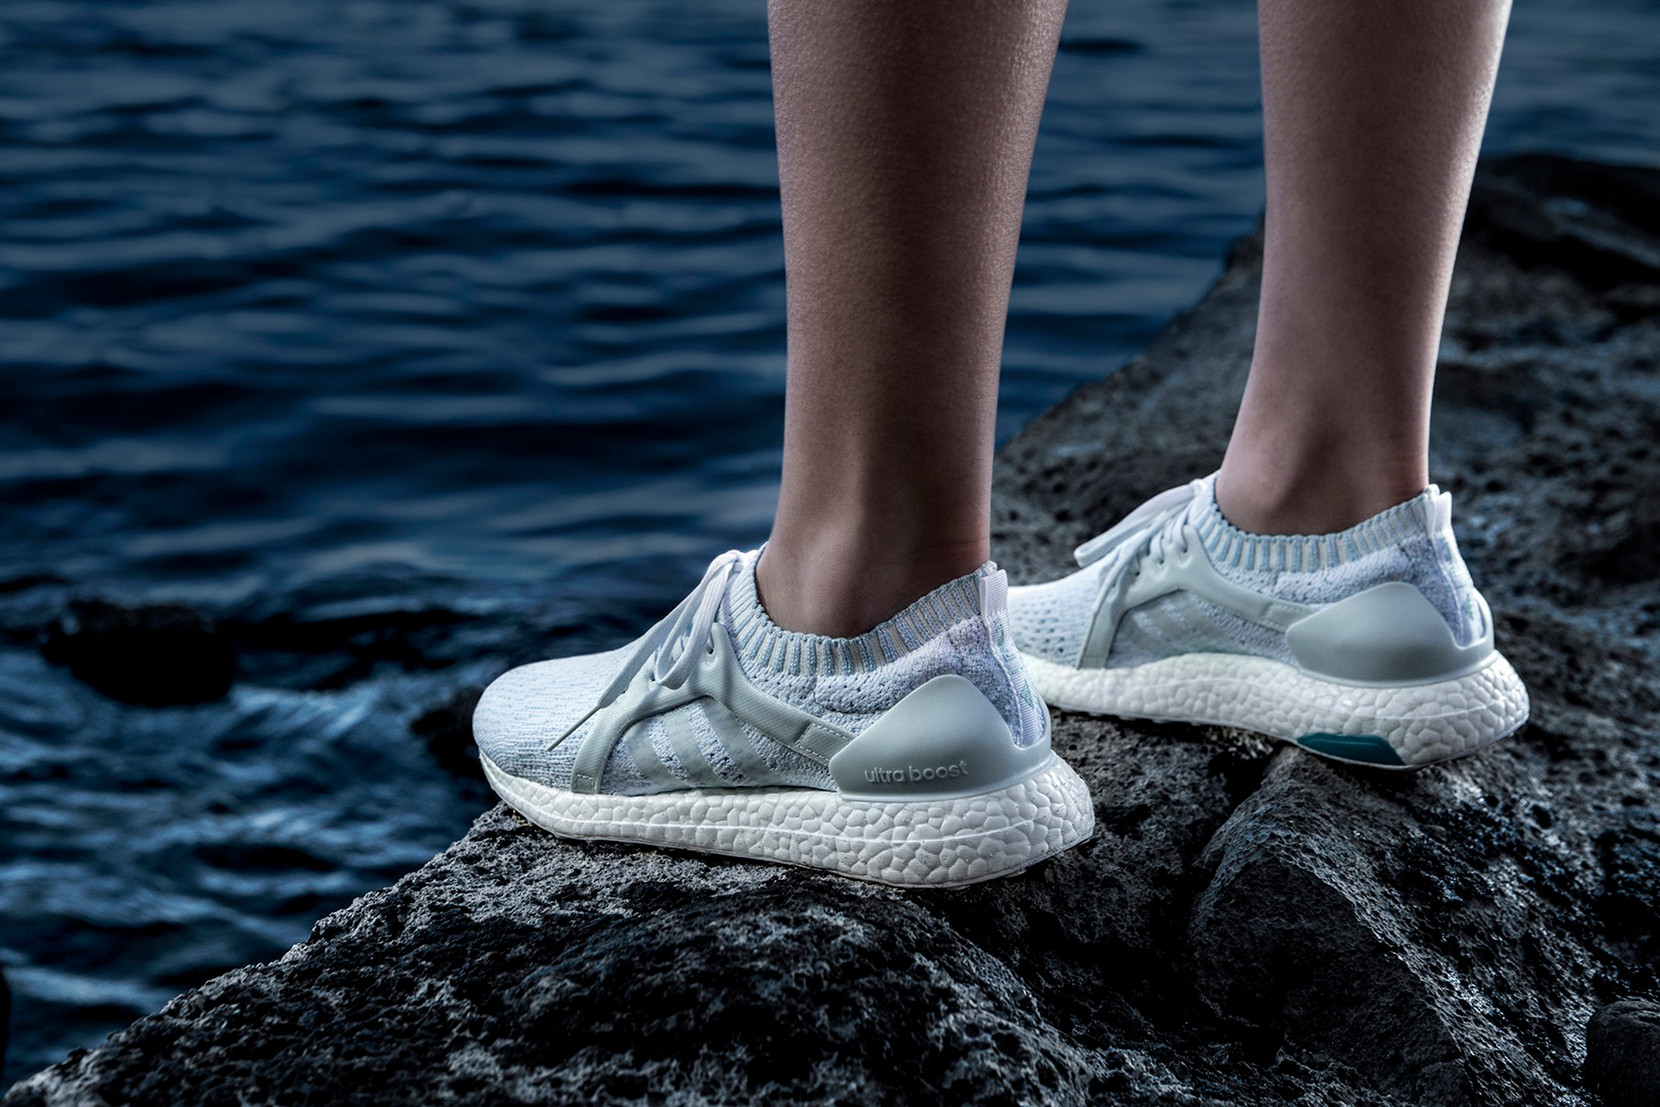 ultra boost x uncaged